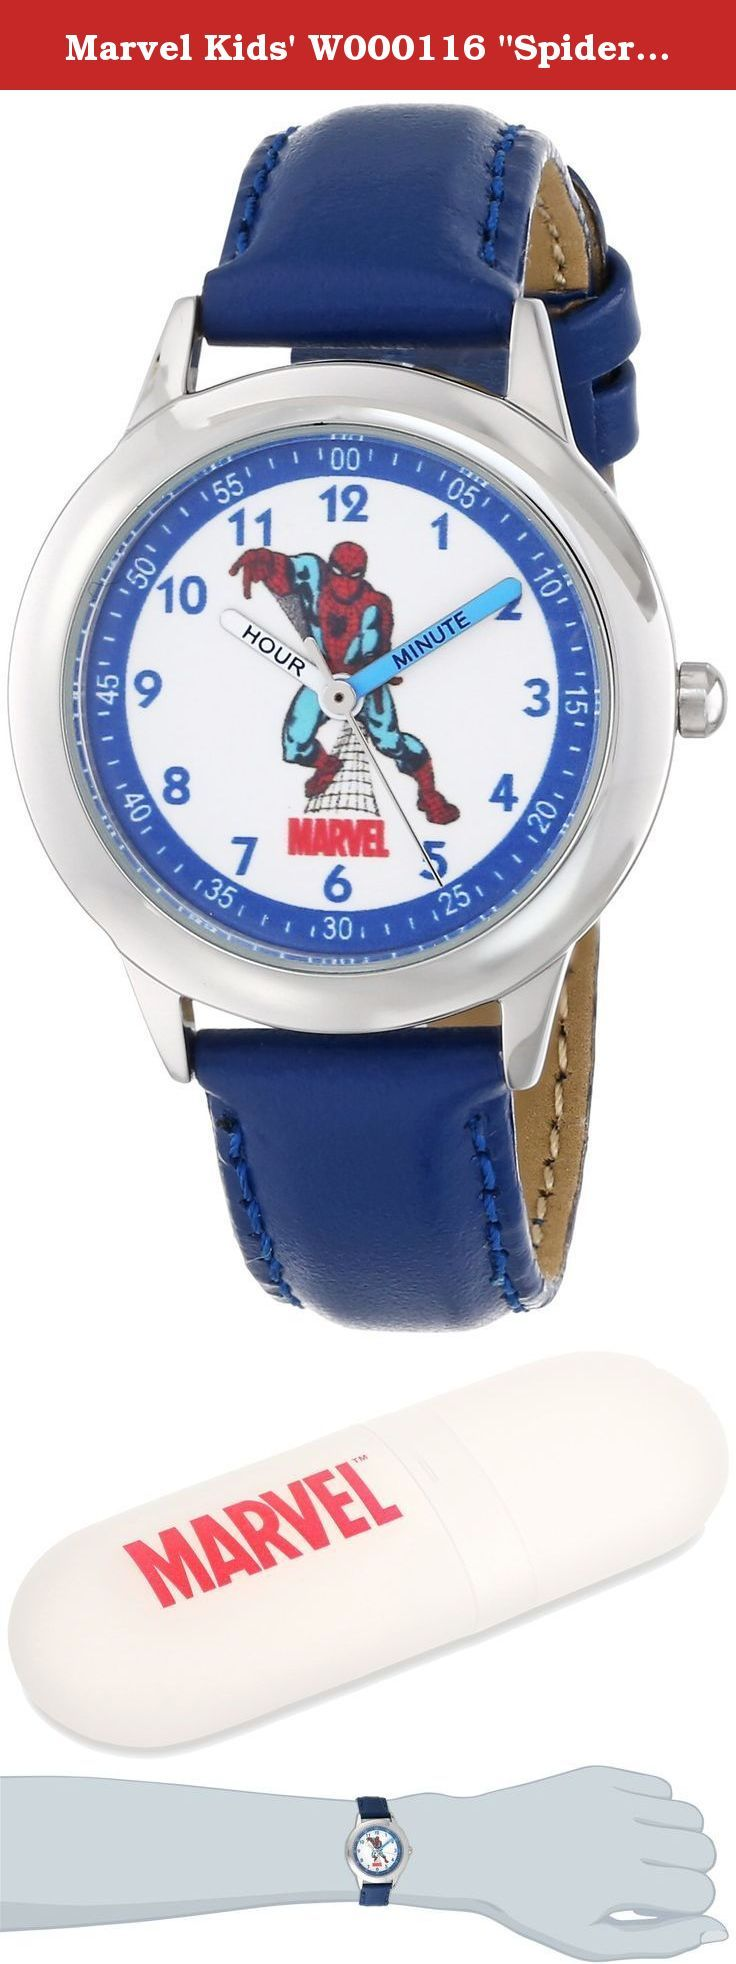 """Marvel Kids' W000116 """"Spiderman"""" Stainless Steel Watch with Leather Band. Keep track of time with this officially licensed marvel stainless steel kid's time teacher watch by ewatchfactory on your wrist. The timepiece displays artwork from your favorite marvel character on the face, and is designed with labeled """"hour"""" and """"minute"""" hands to help young ones learn how to tell time. This classic watch has a polished and matte steel finish and a precision japan movement for accurate time…"""